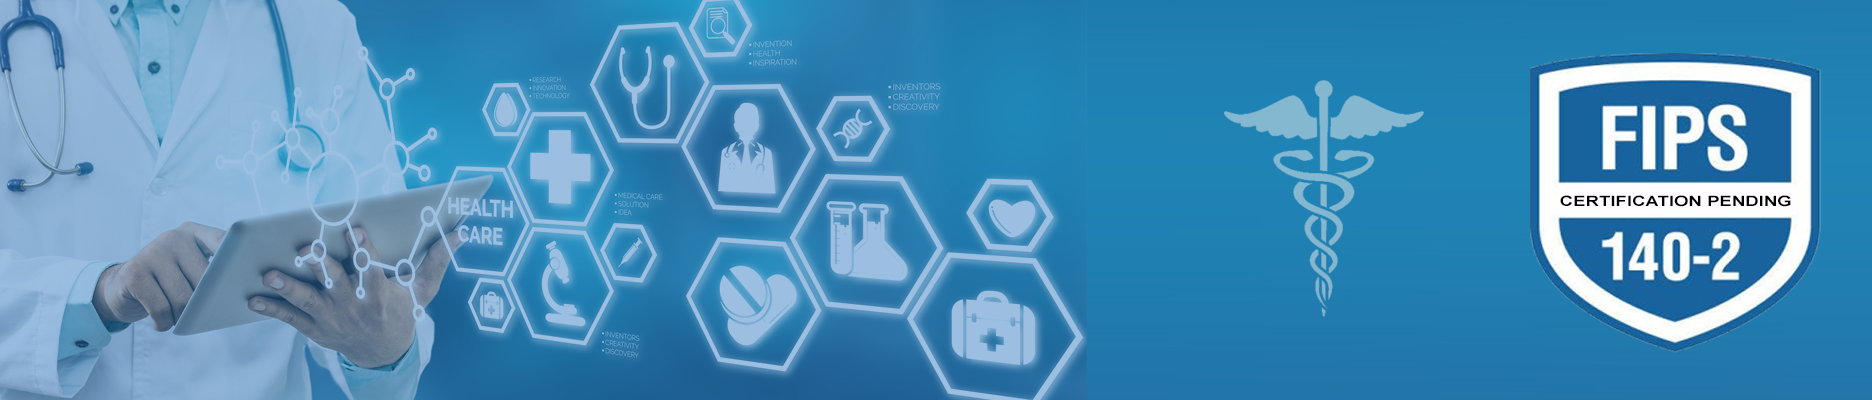 Healthcare Data Protection